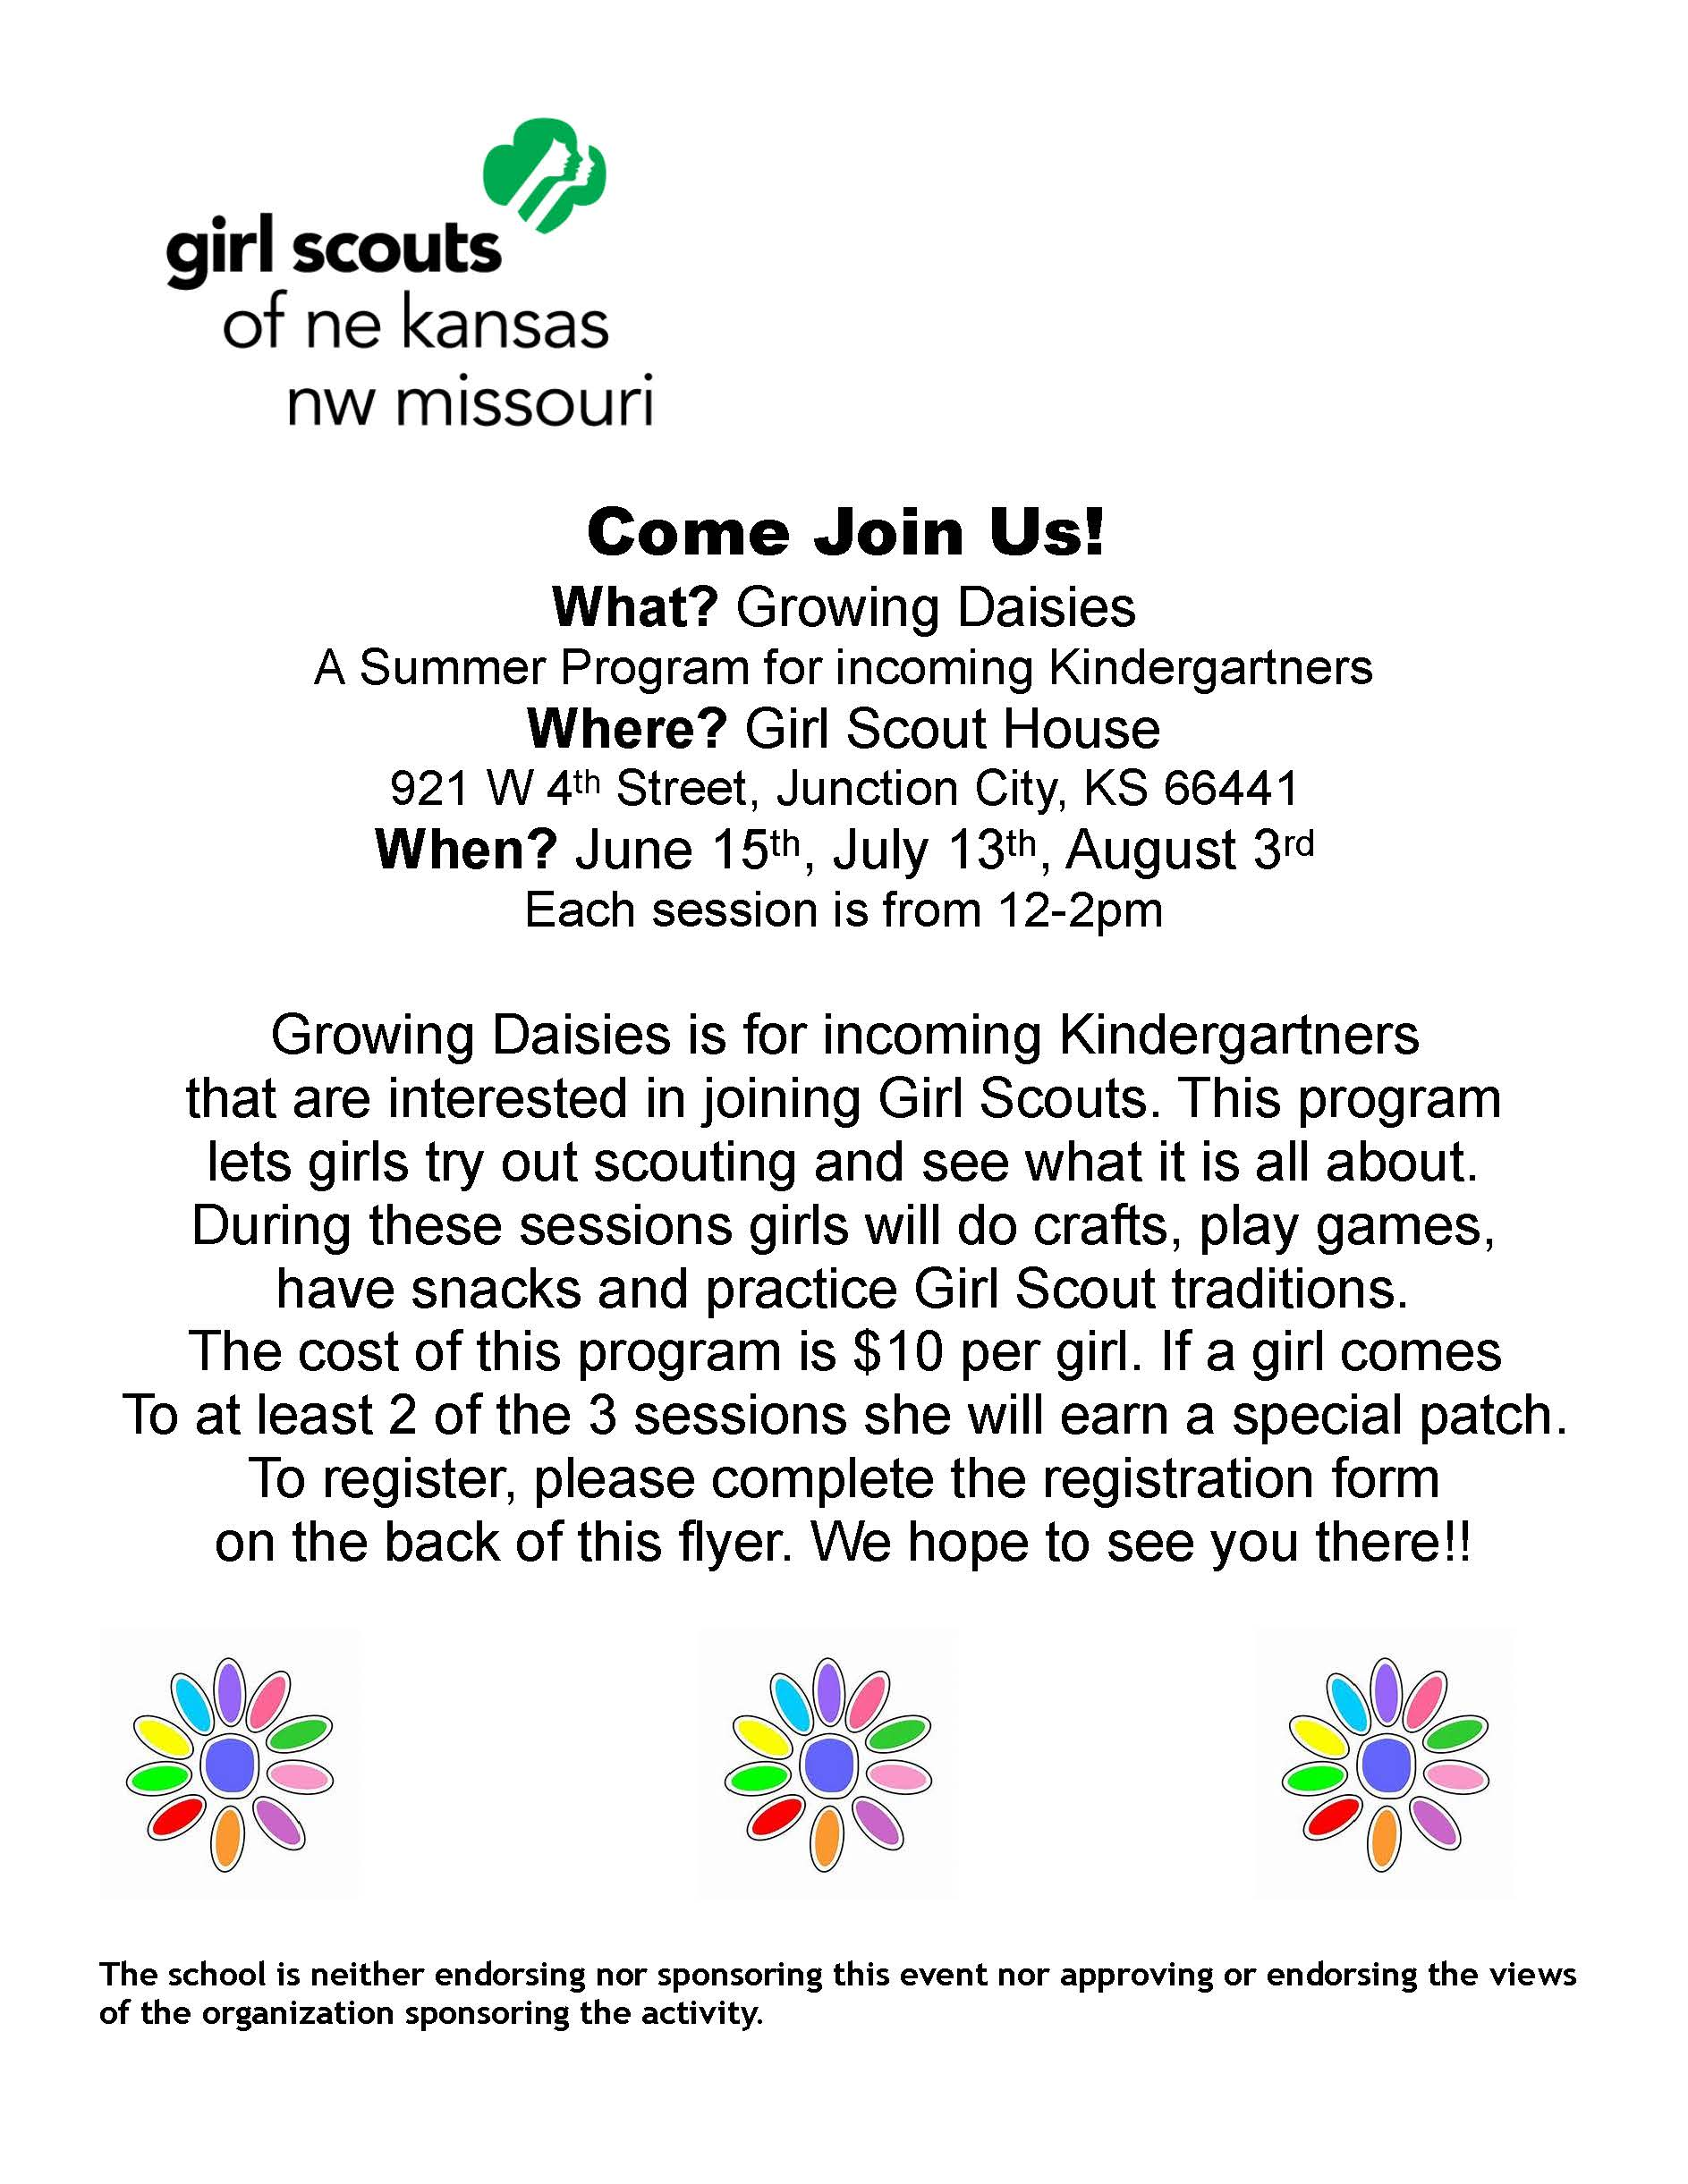 Growing Daisies Girl Scouts flyer